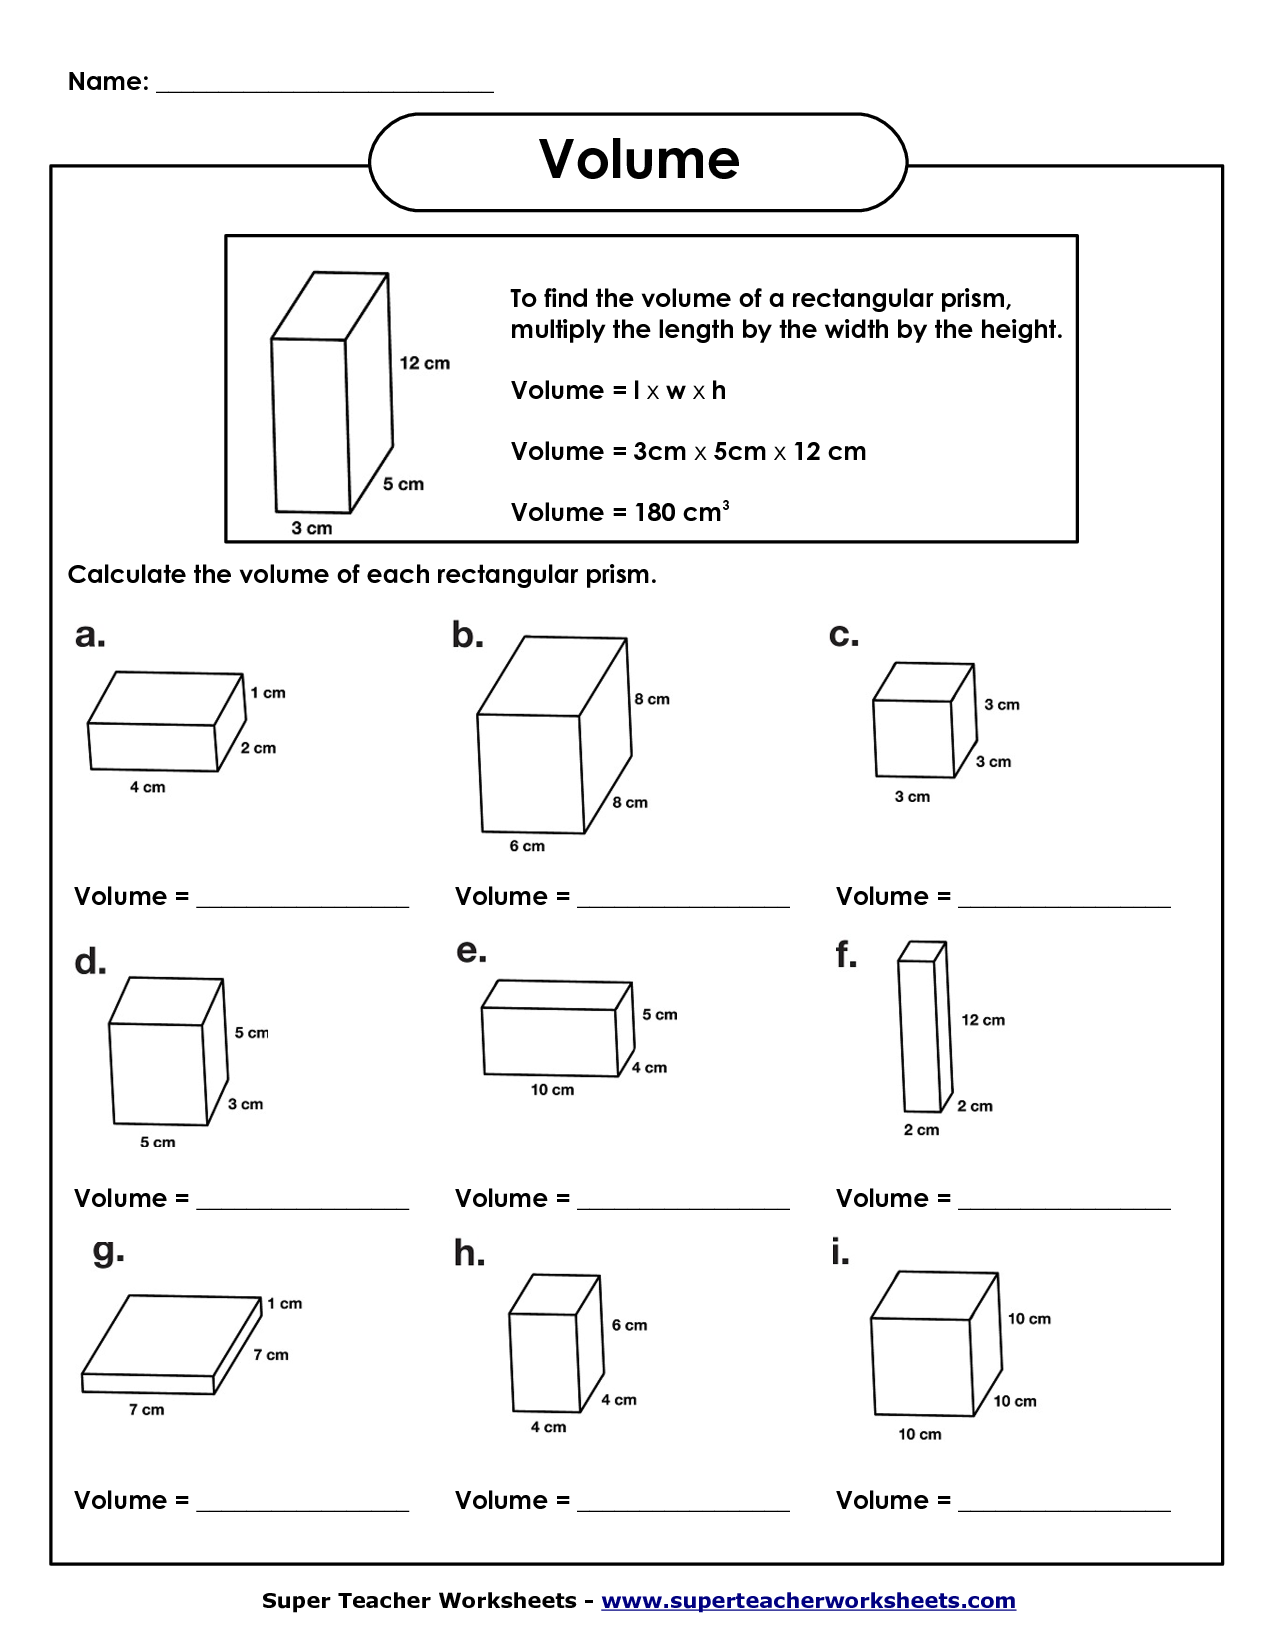 worksheet Volume Of 3d Shapes Worksheet Pdf volume of rectangular prism worksheet worksheets math worksheet